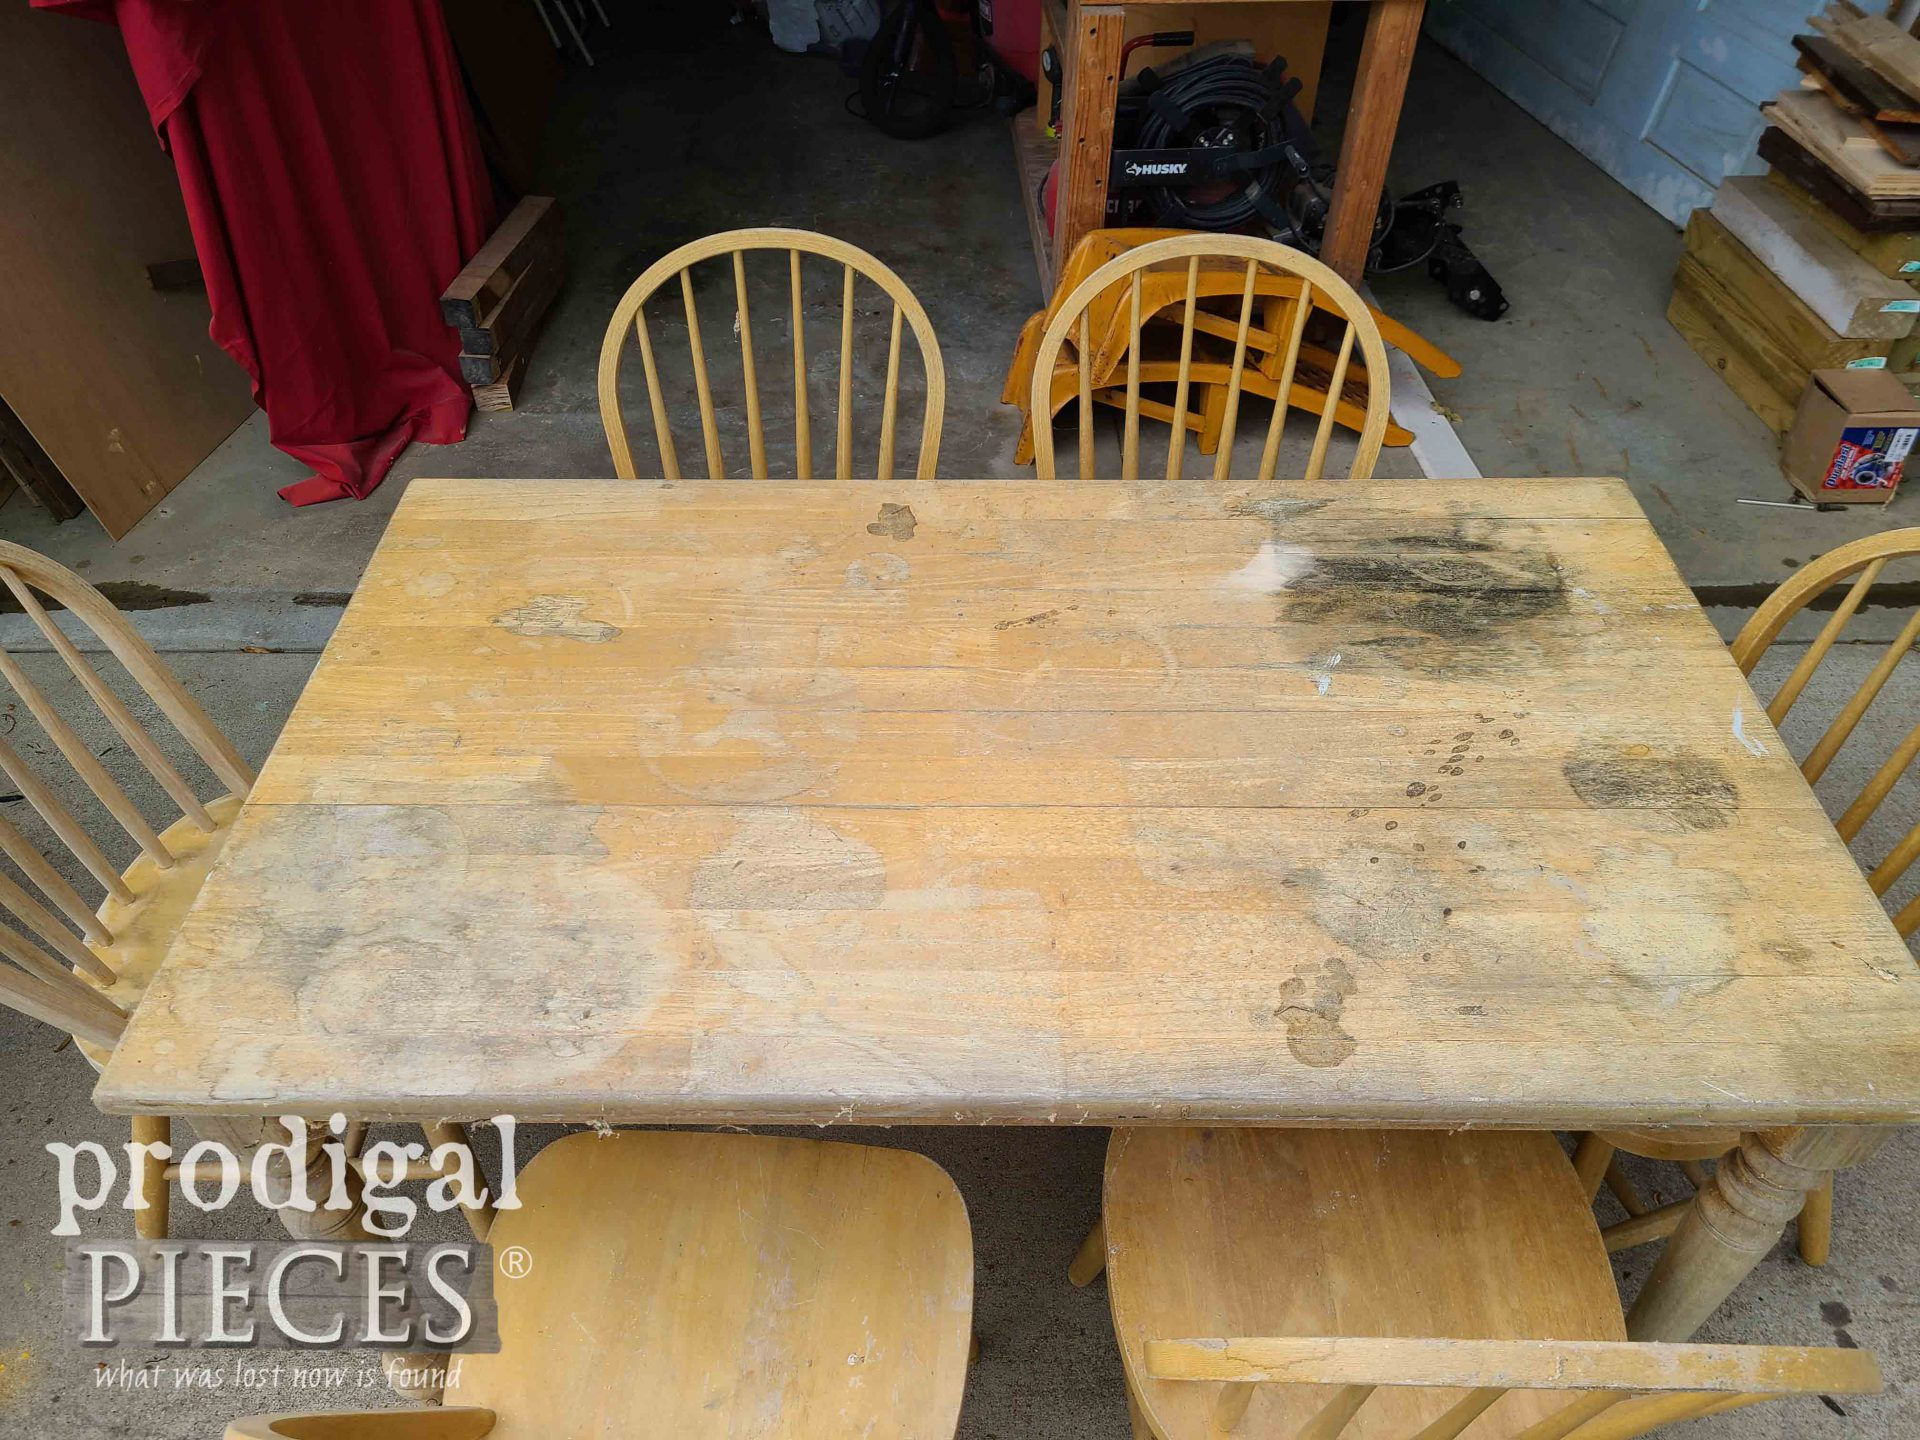 Damaged & Stained Farmhouse Dining Table | prodigalpieces.com